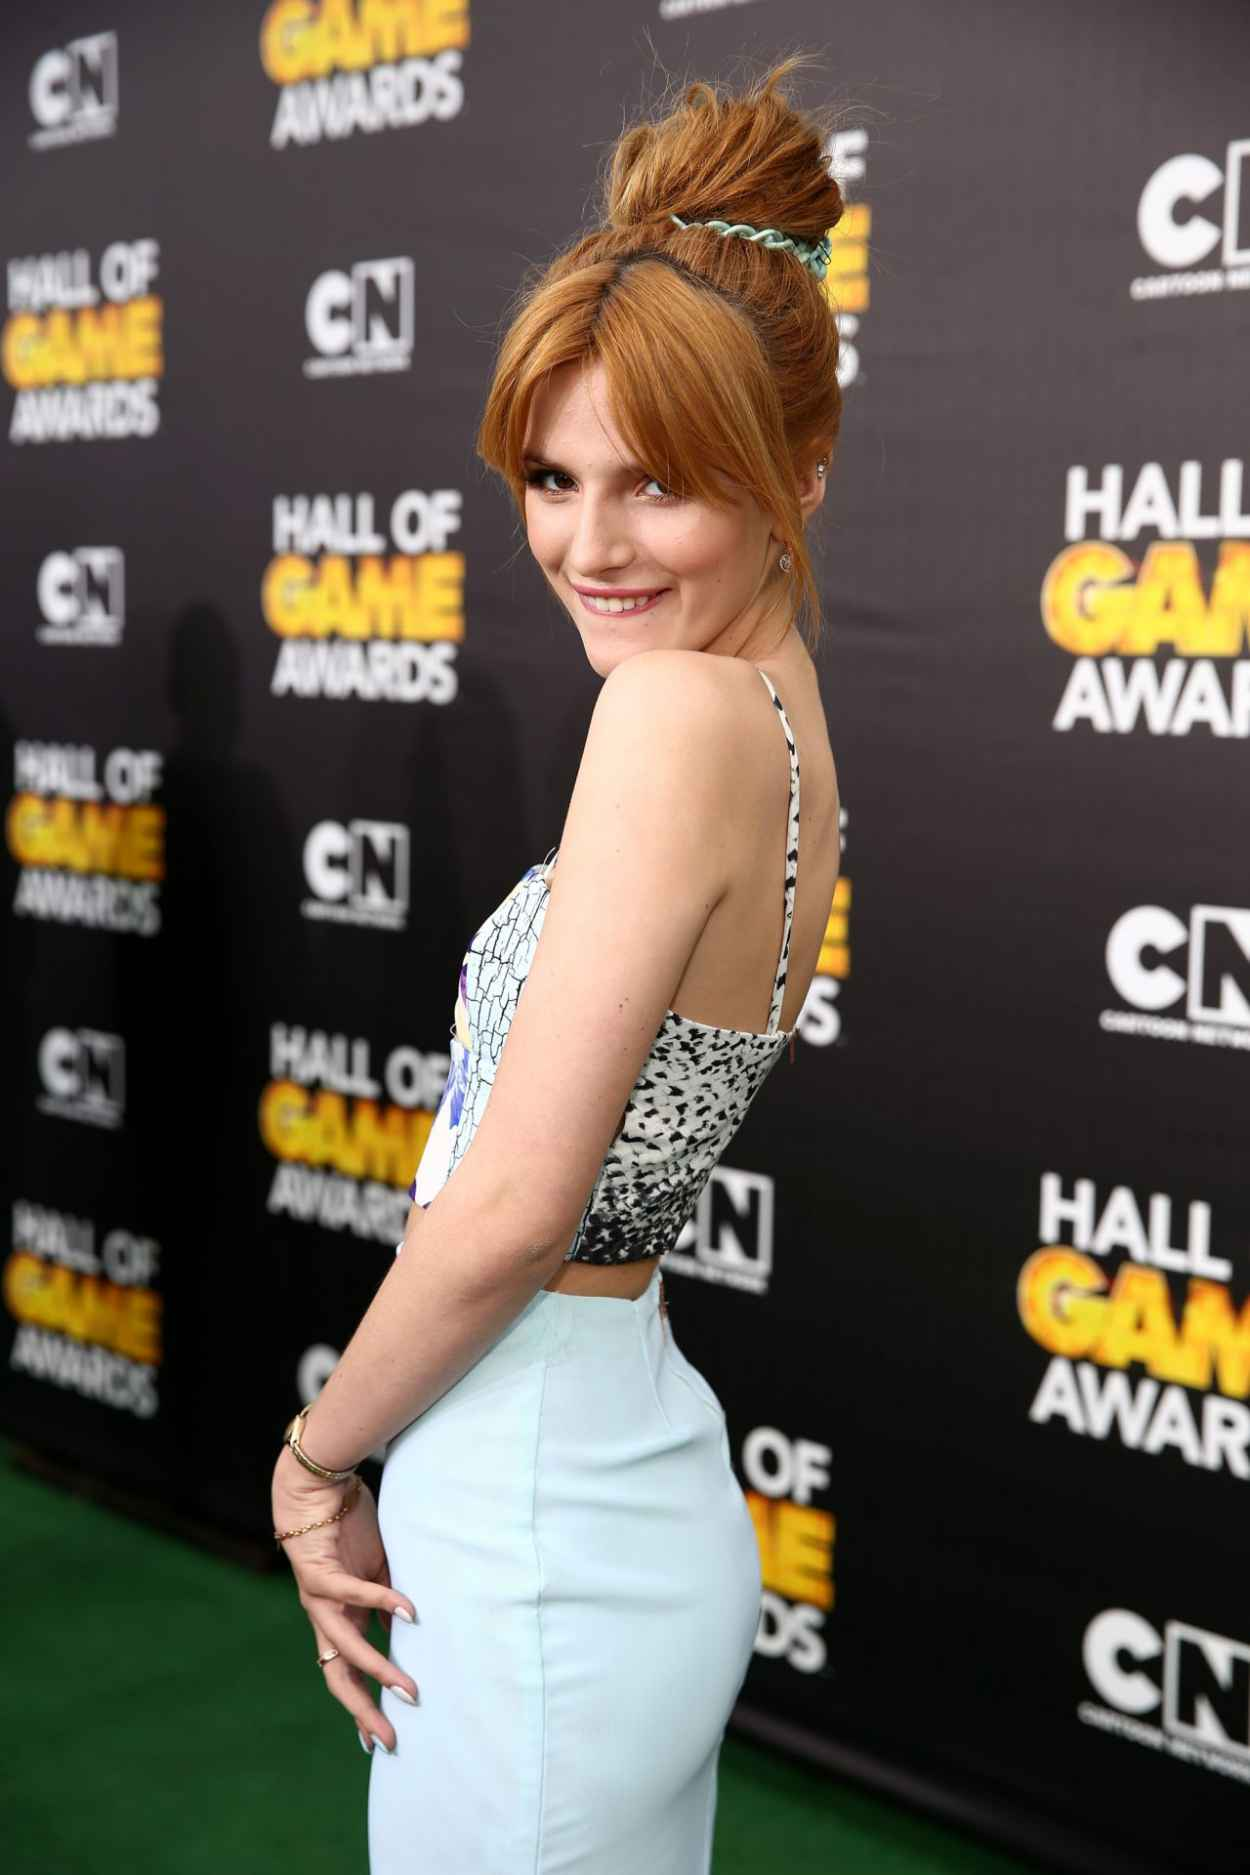 Bella Thorne - 4th Annual Hall of Game Awards in Santa Monica - February 2015-1